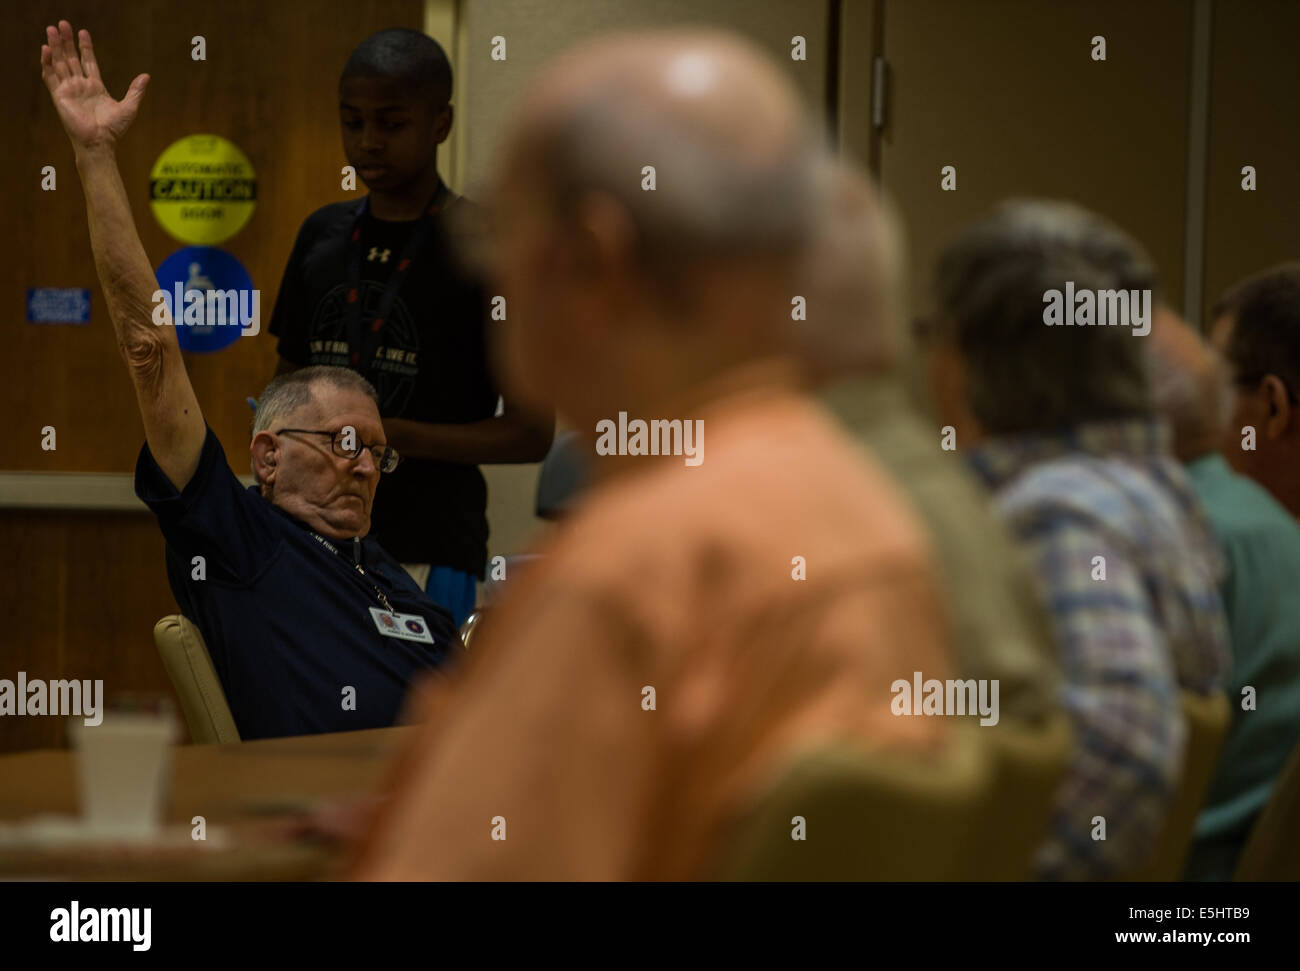 A retired military veteran raises his hand  in celebration during a bingo game June 18, 2014, at the Armed Forces Stock Photo